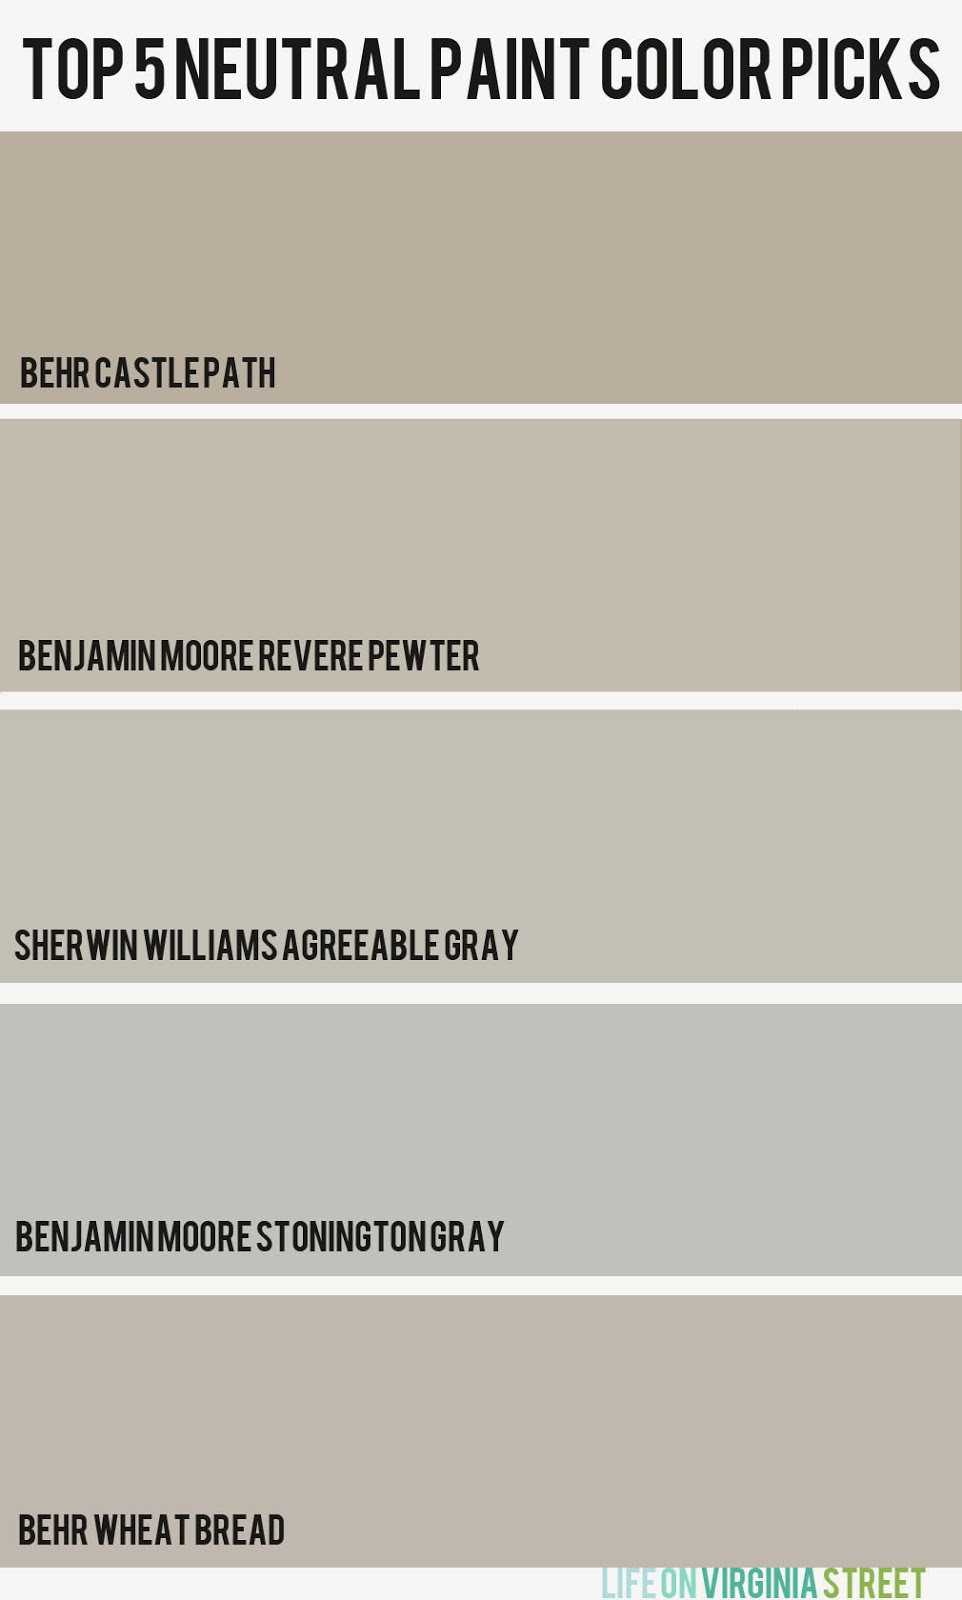 Build Omaha Picking The Perfect Paint Color And My Top Five Neutral Paint Color Picks That